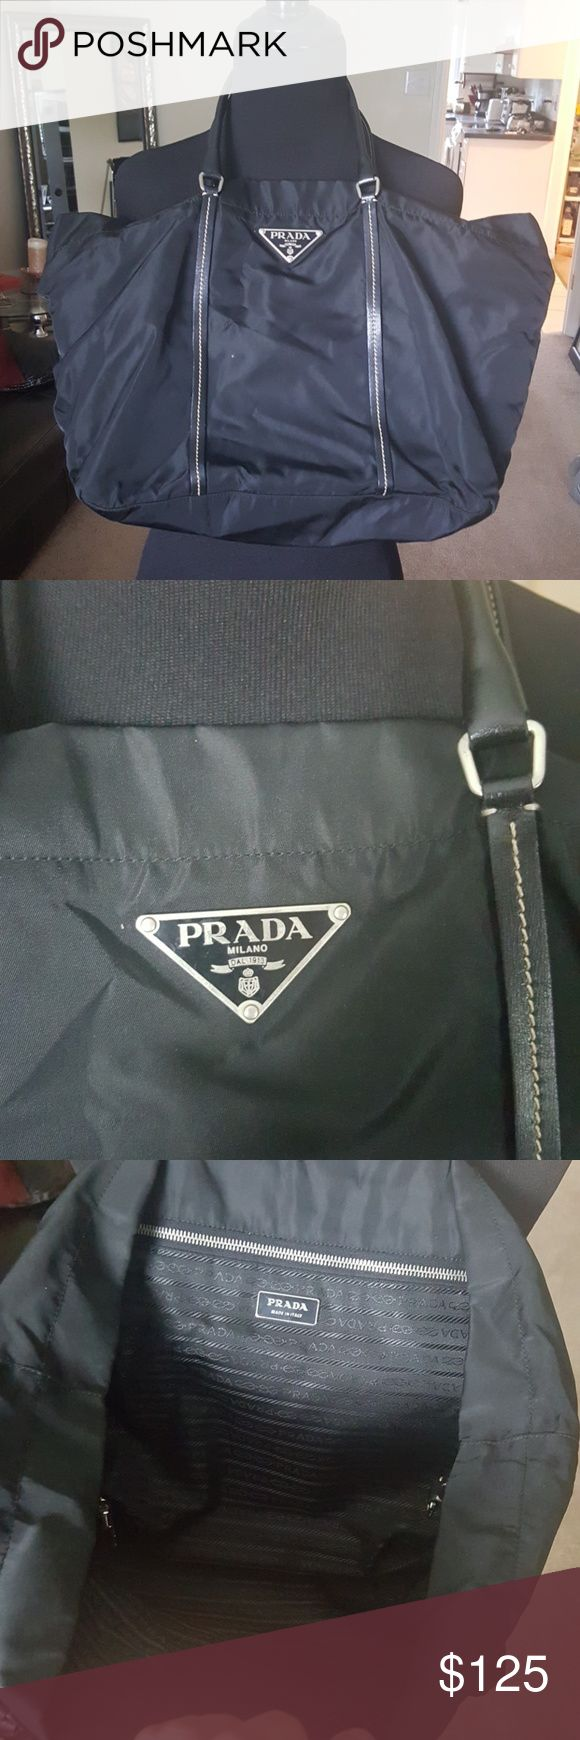 Authentic black Prada tote bag 100% authentic Prada nylon bag with inside zipper and Prada logo lining on the inside. Bag can be cinched with the hooks seen in picture 4 to bring the sides in. Clean interior, and in all over great shape. Bag is on a size 6 dress form. comes from smoke-free home Prada Bags Totes